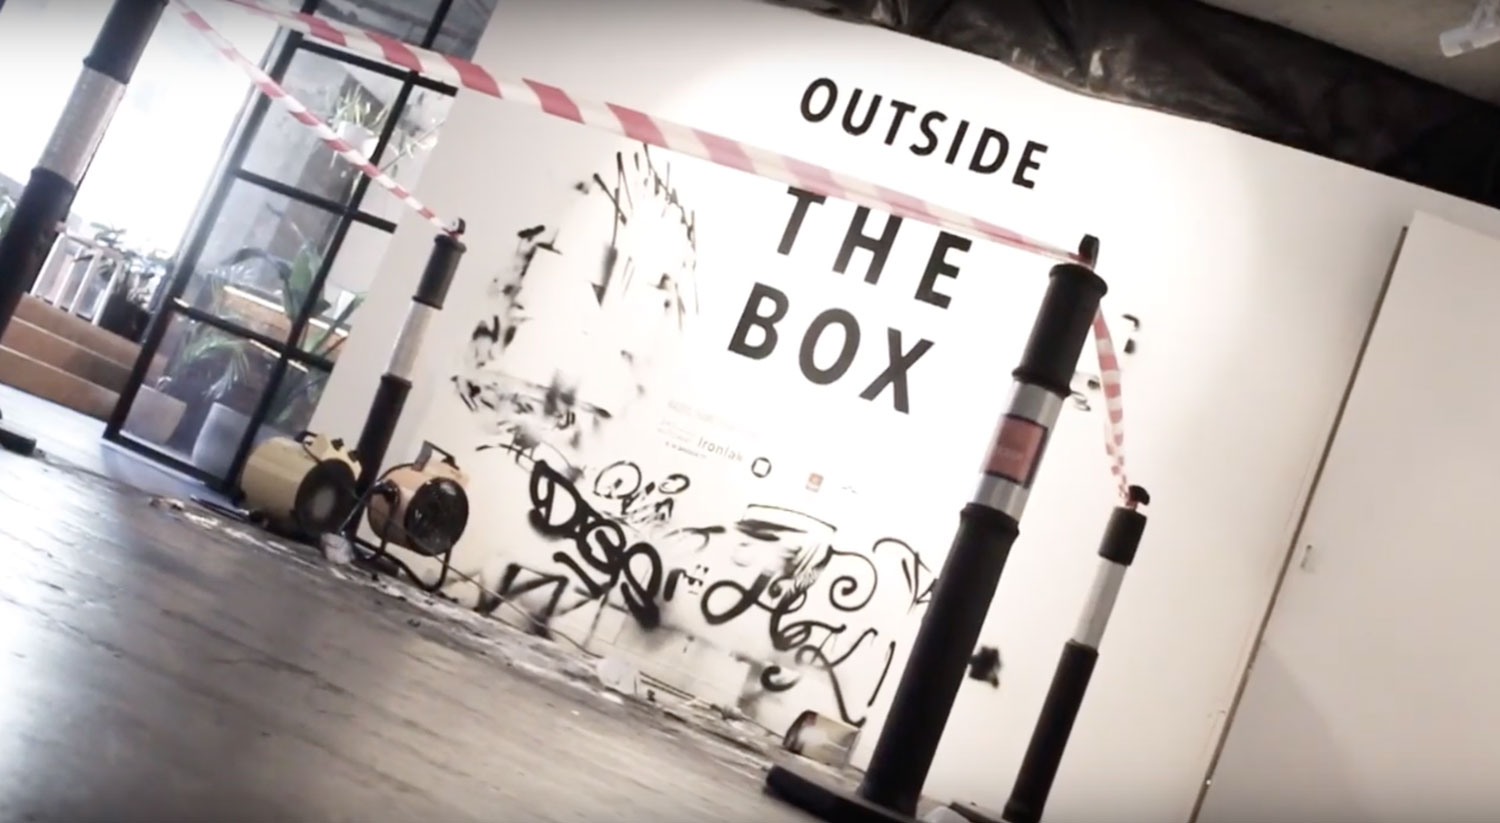 Just Another Agency - Outside the Box